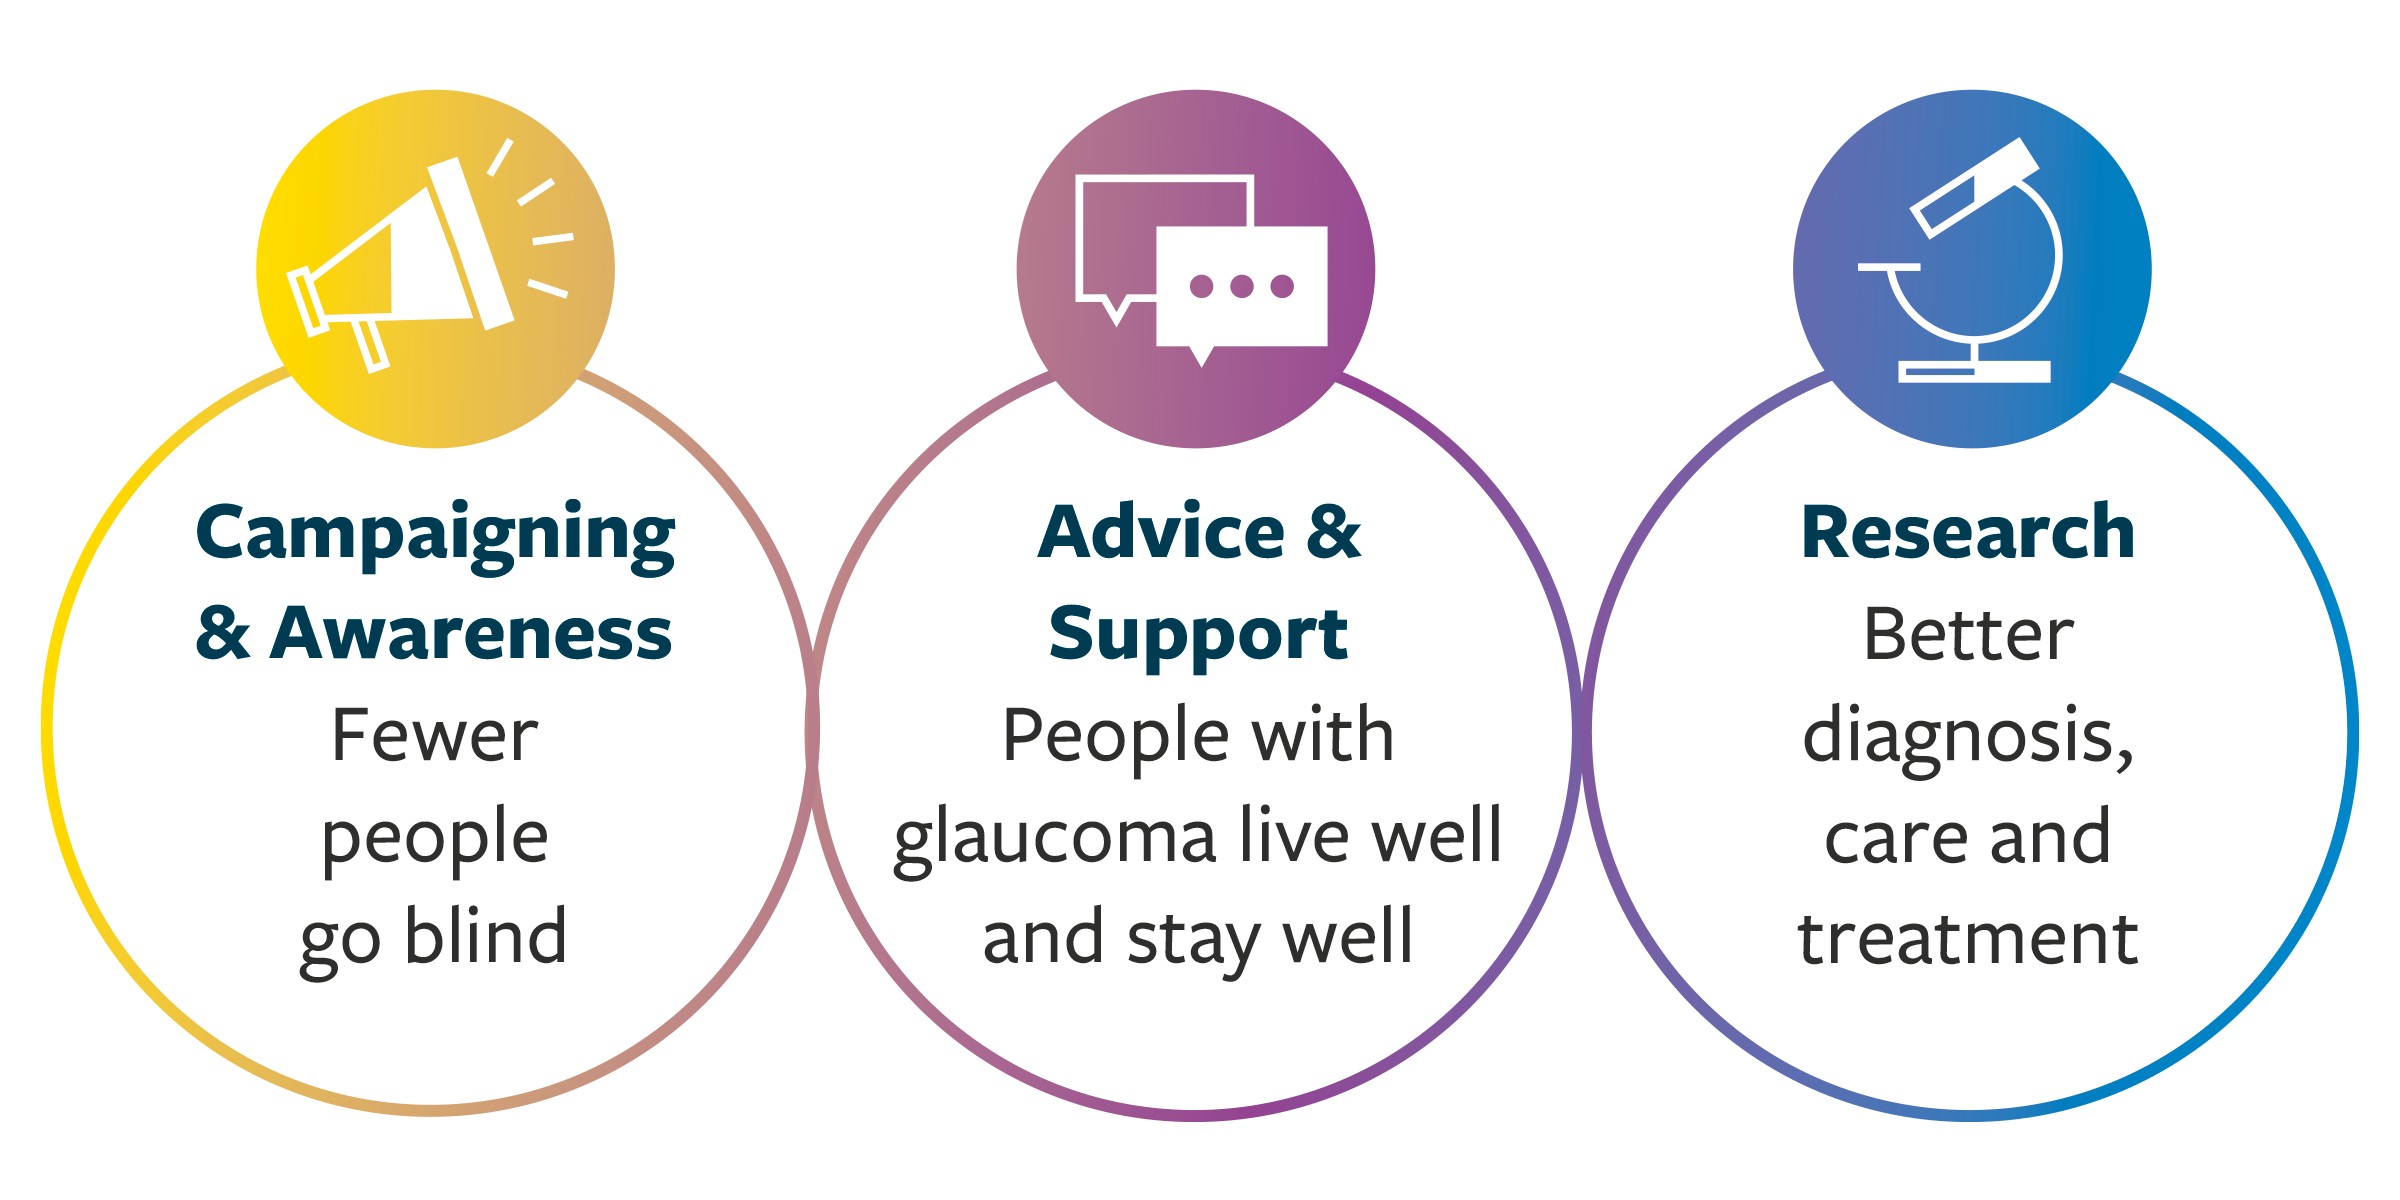 This graphic shows the 'three pillars' of Glaucoma UK's work: Campaigning and Advocacy, Advice and Support, and Research